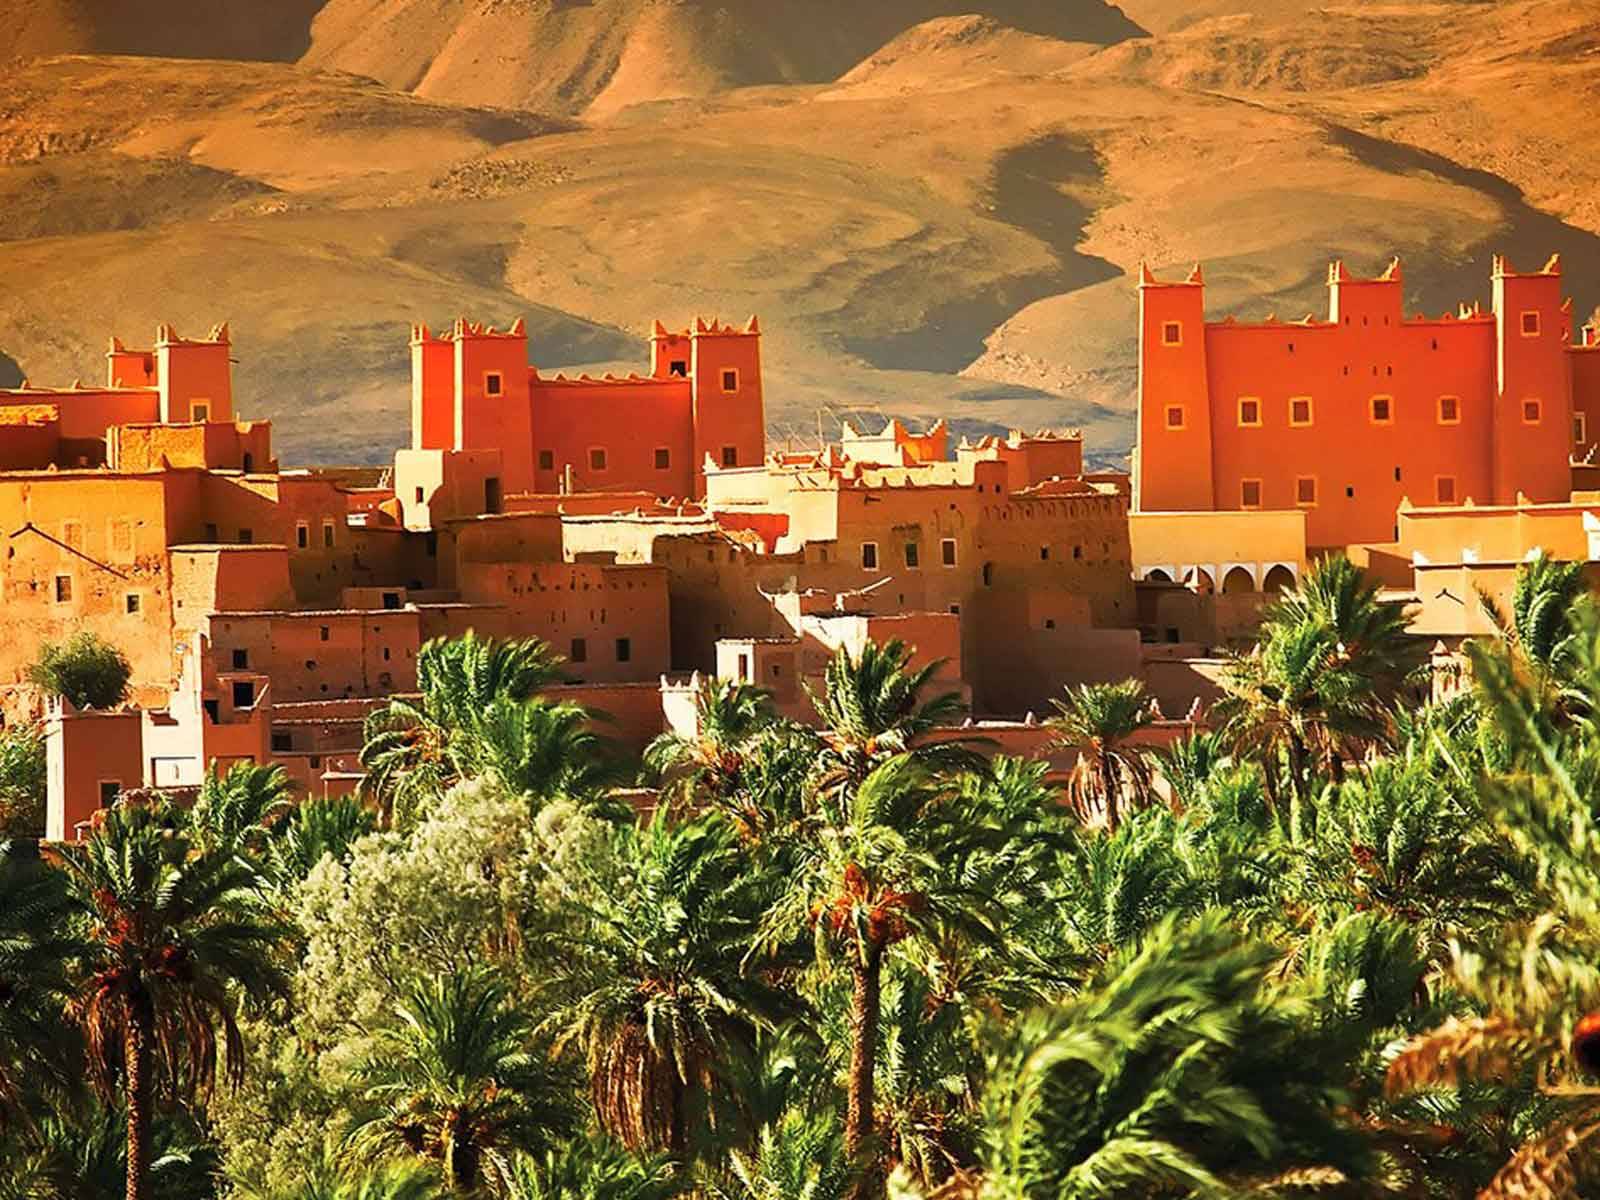 kasbah sahara desrt tour the best place to take a rest in sud of morocco